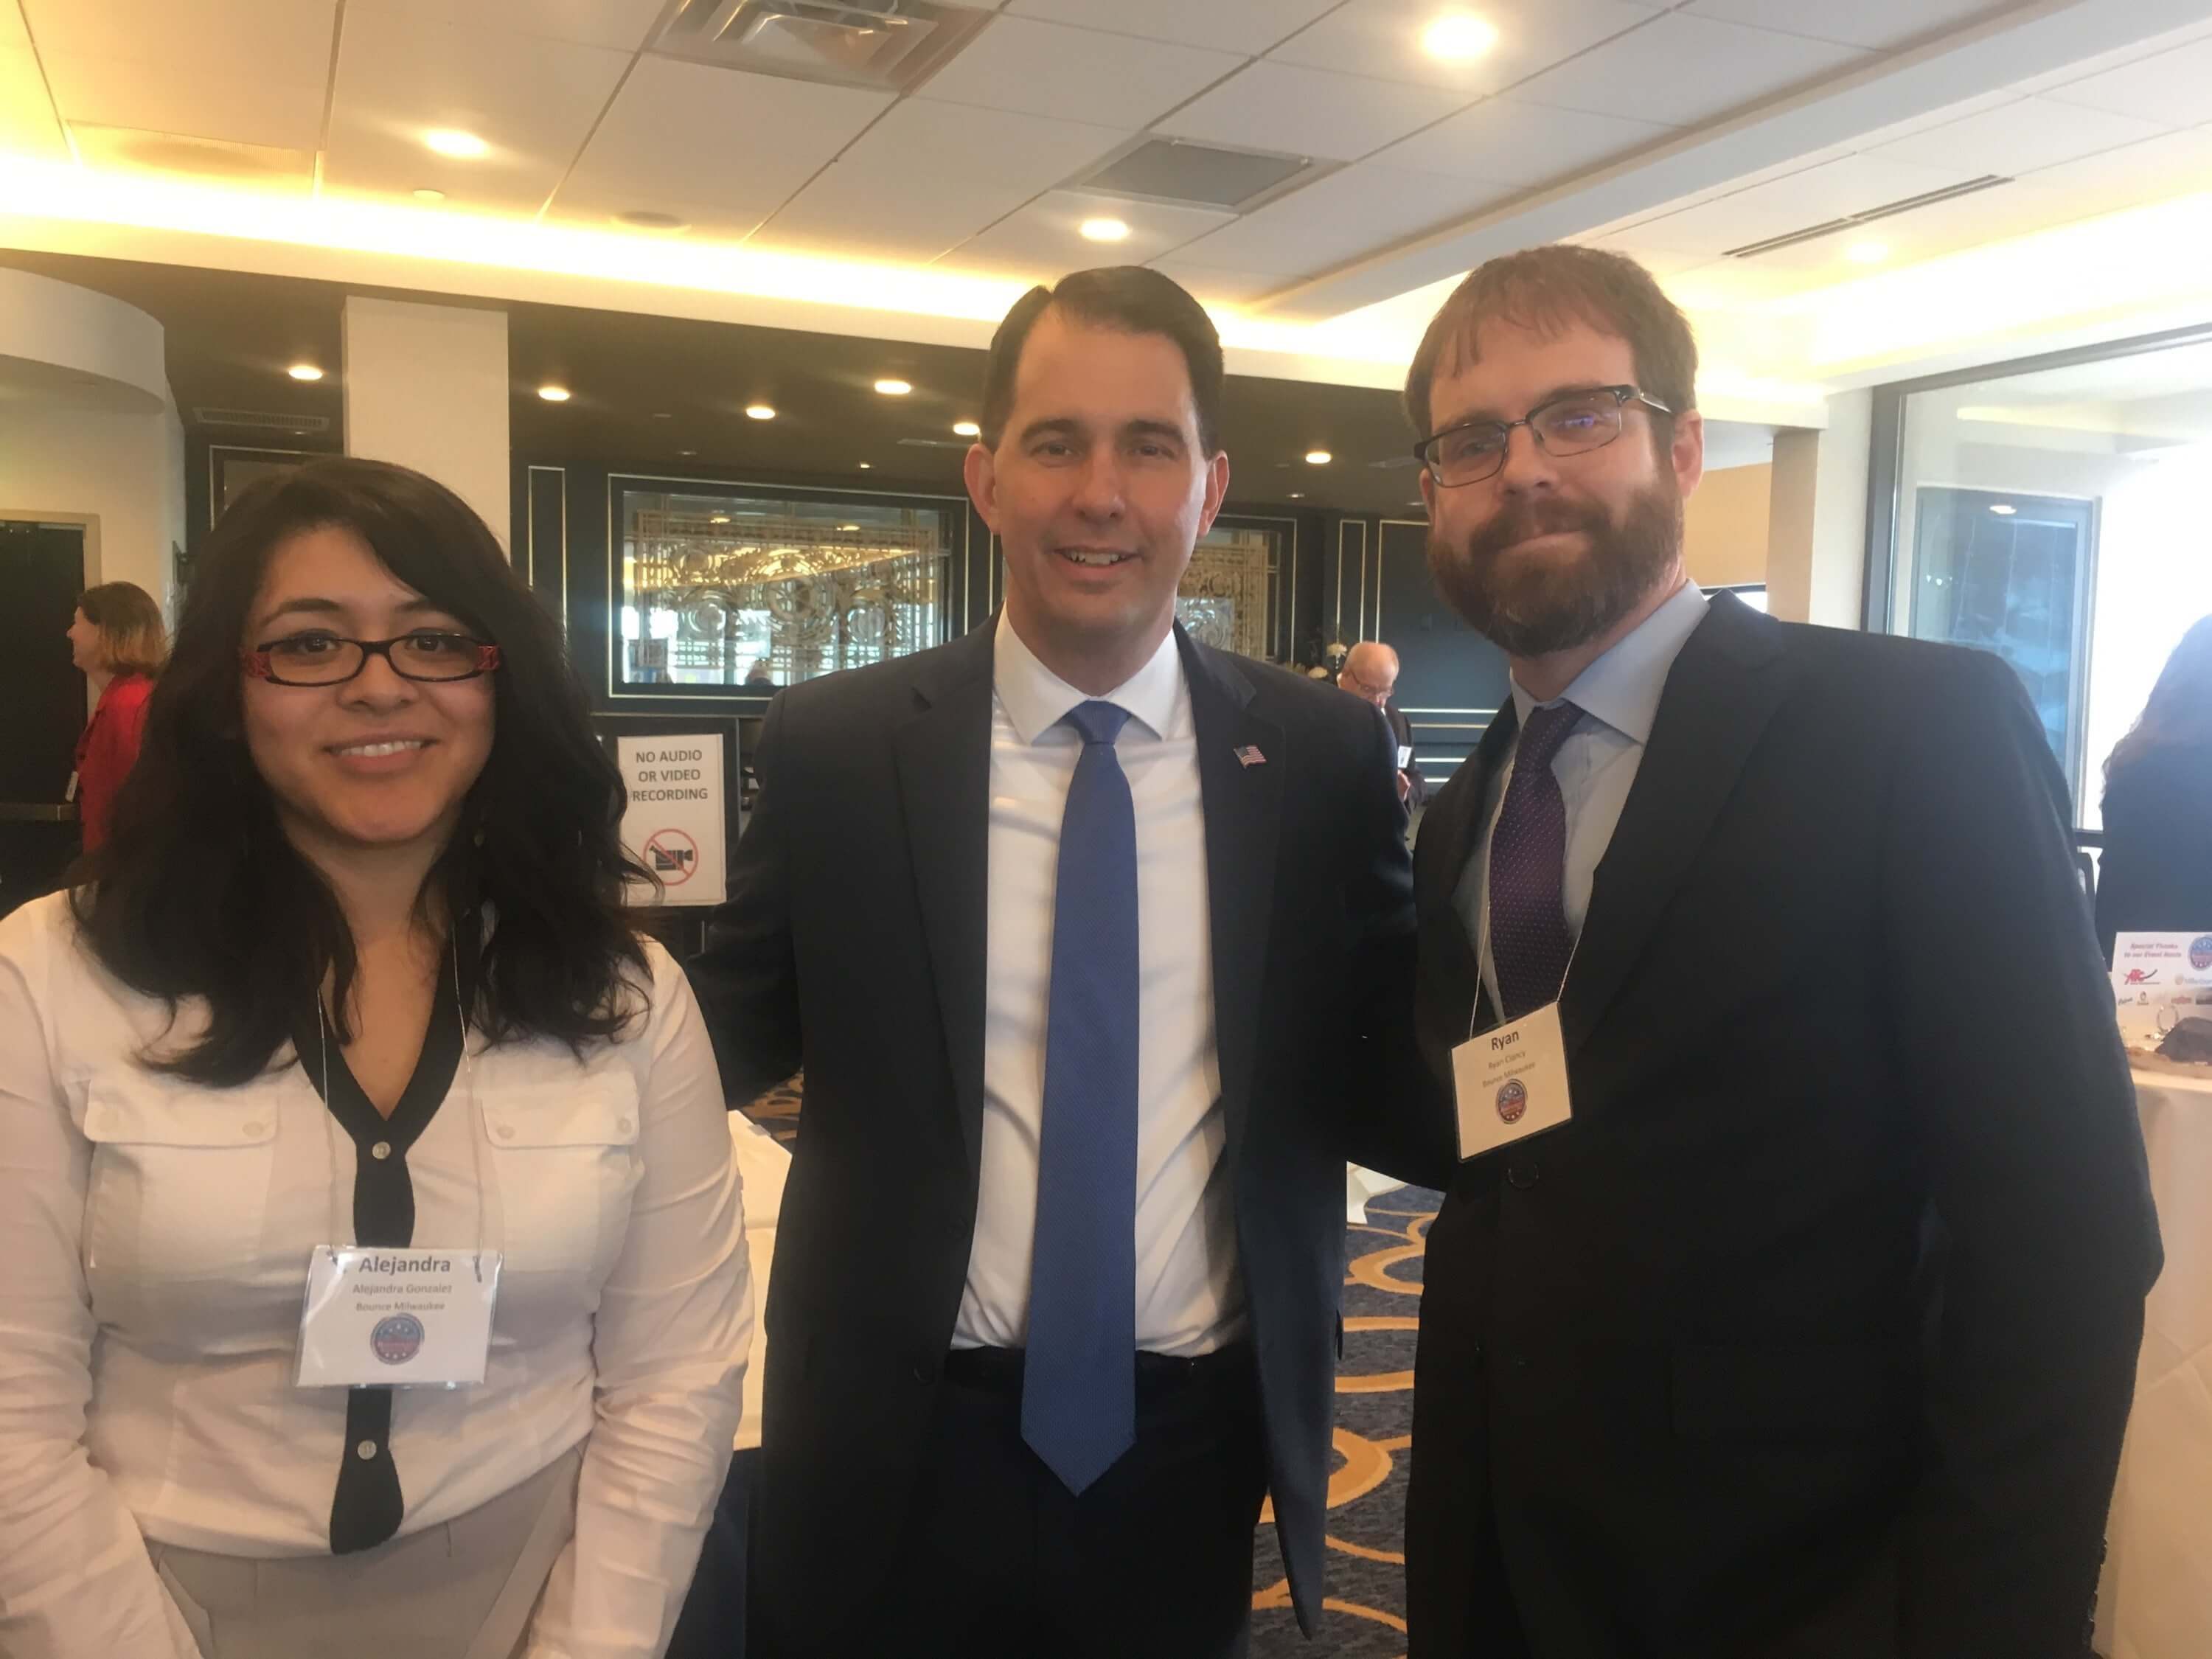 Ryan Clancy, right, with Gov. Scott Walker and Alejandra Gonzalez Aviña, left, at the time a manager for Clancy's business, during a Wisconsin Restaurant Association lobbying day in January 2018. Photo courtesy of Ryan Clancy.